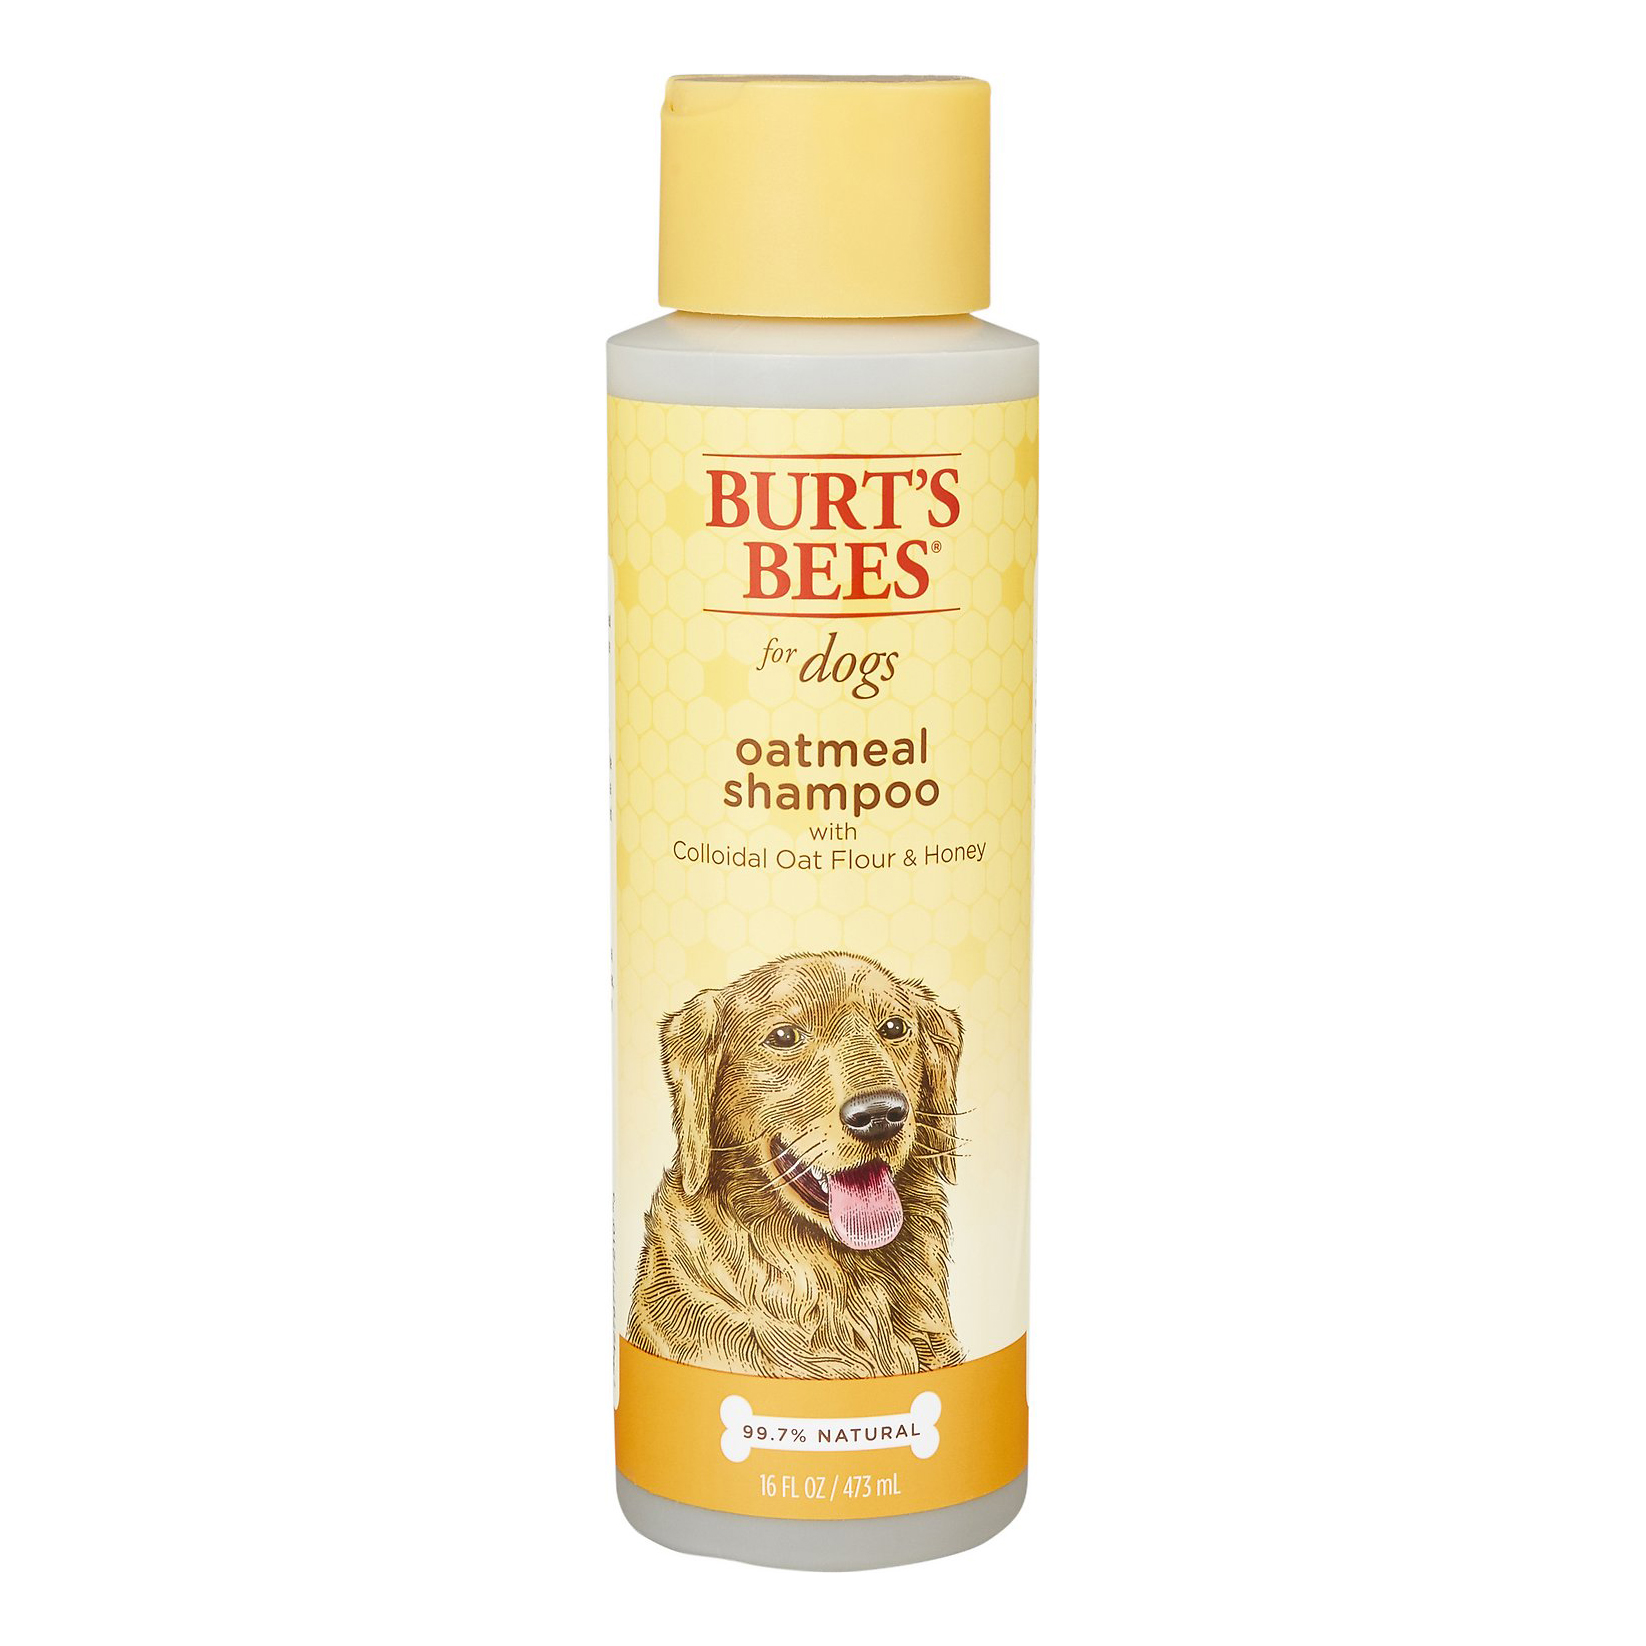 burts-bees-oatmeal-shampoo-with-colloidal-oat-flour-and-honey-for-dogs